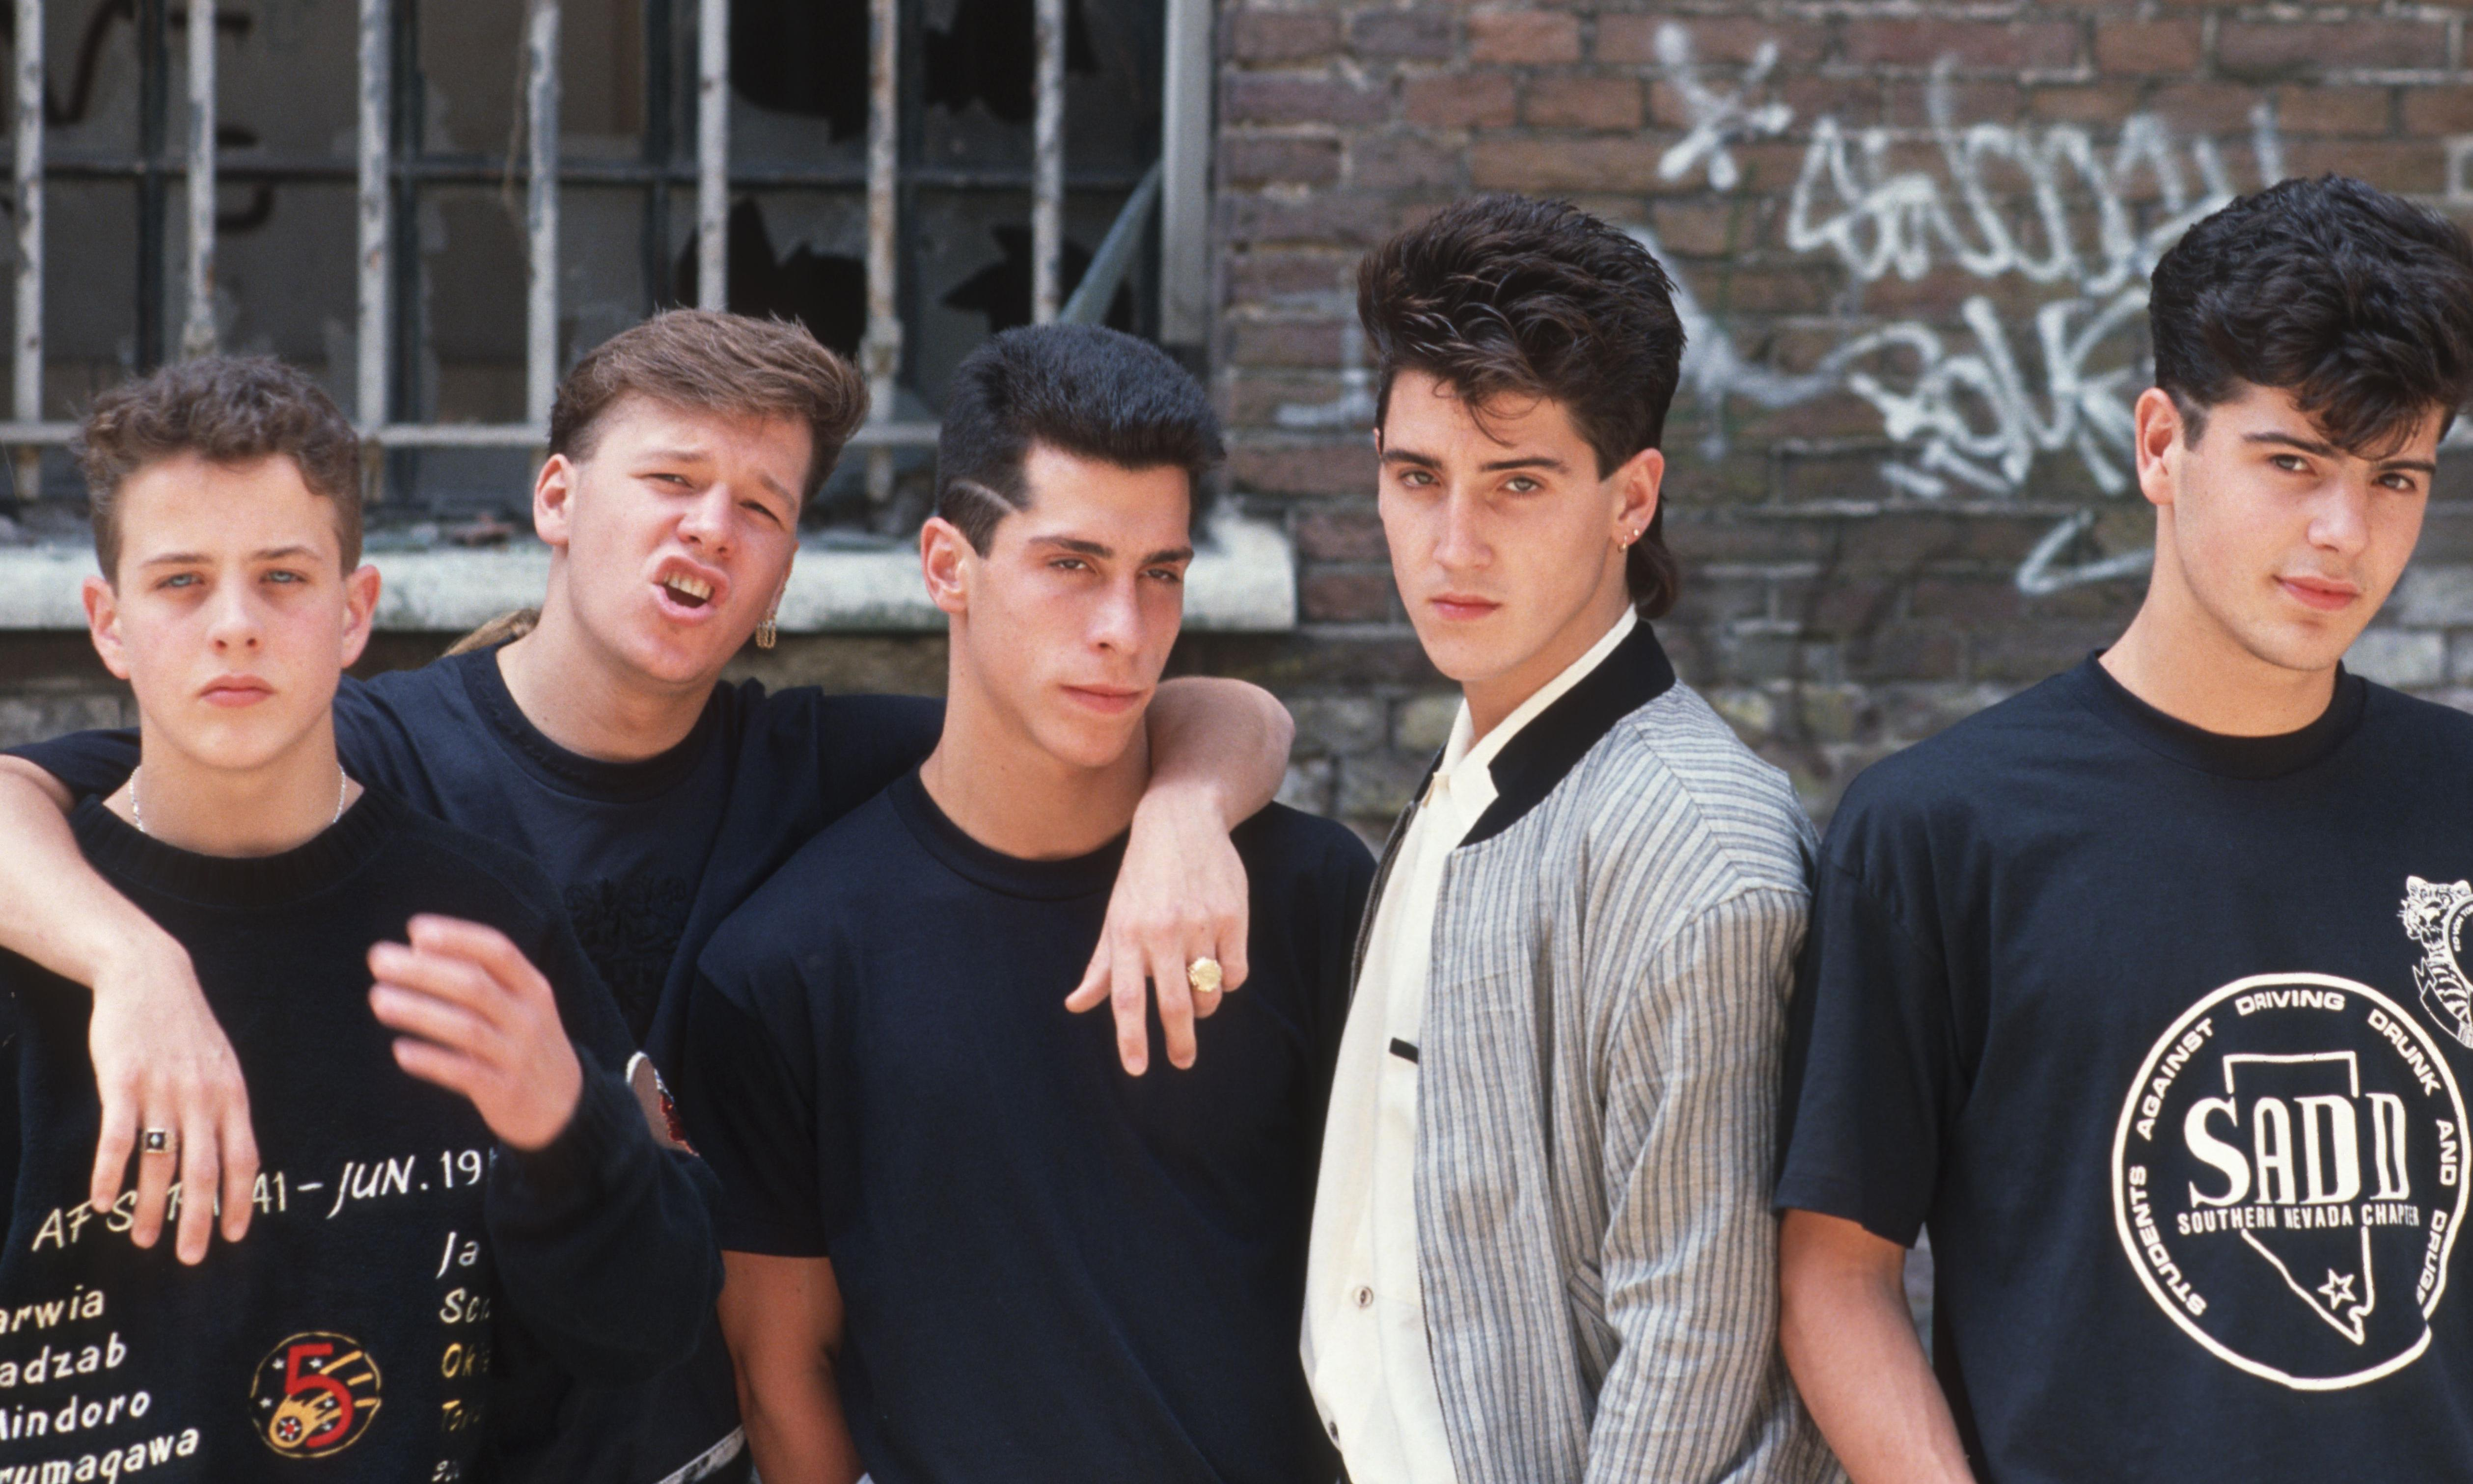 Are New Kids on the Block worth remembering?